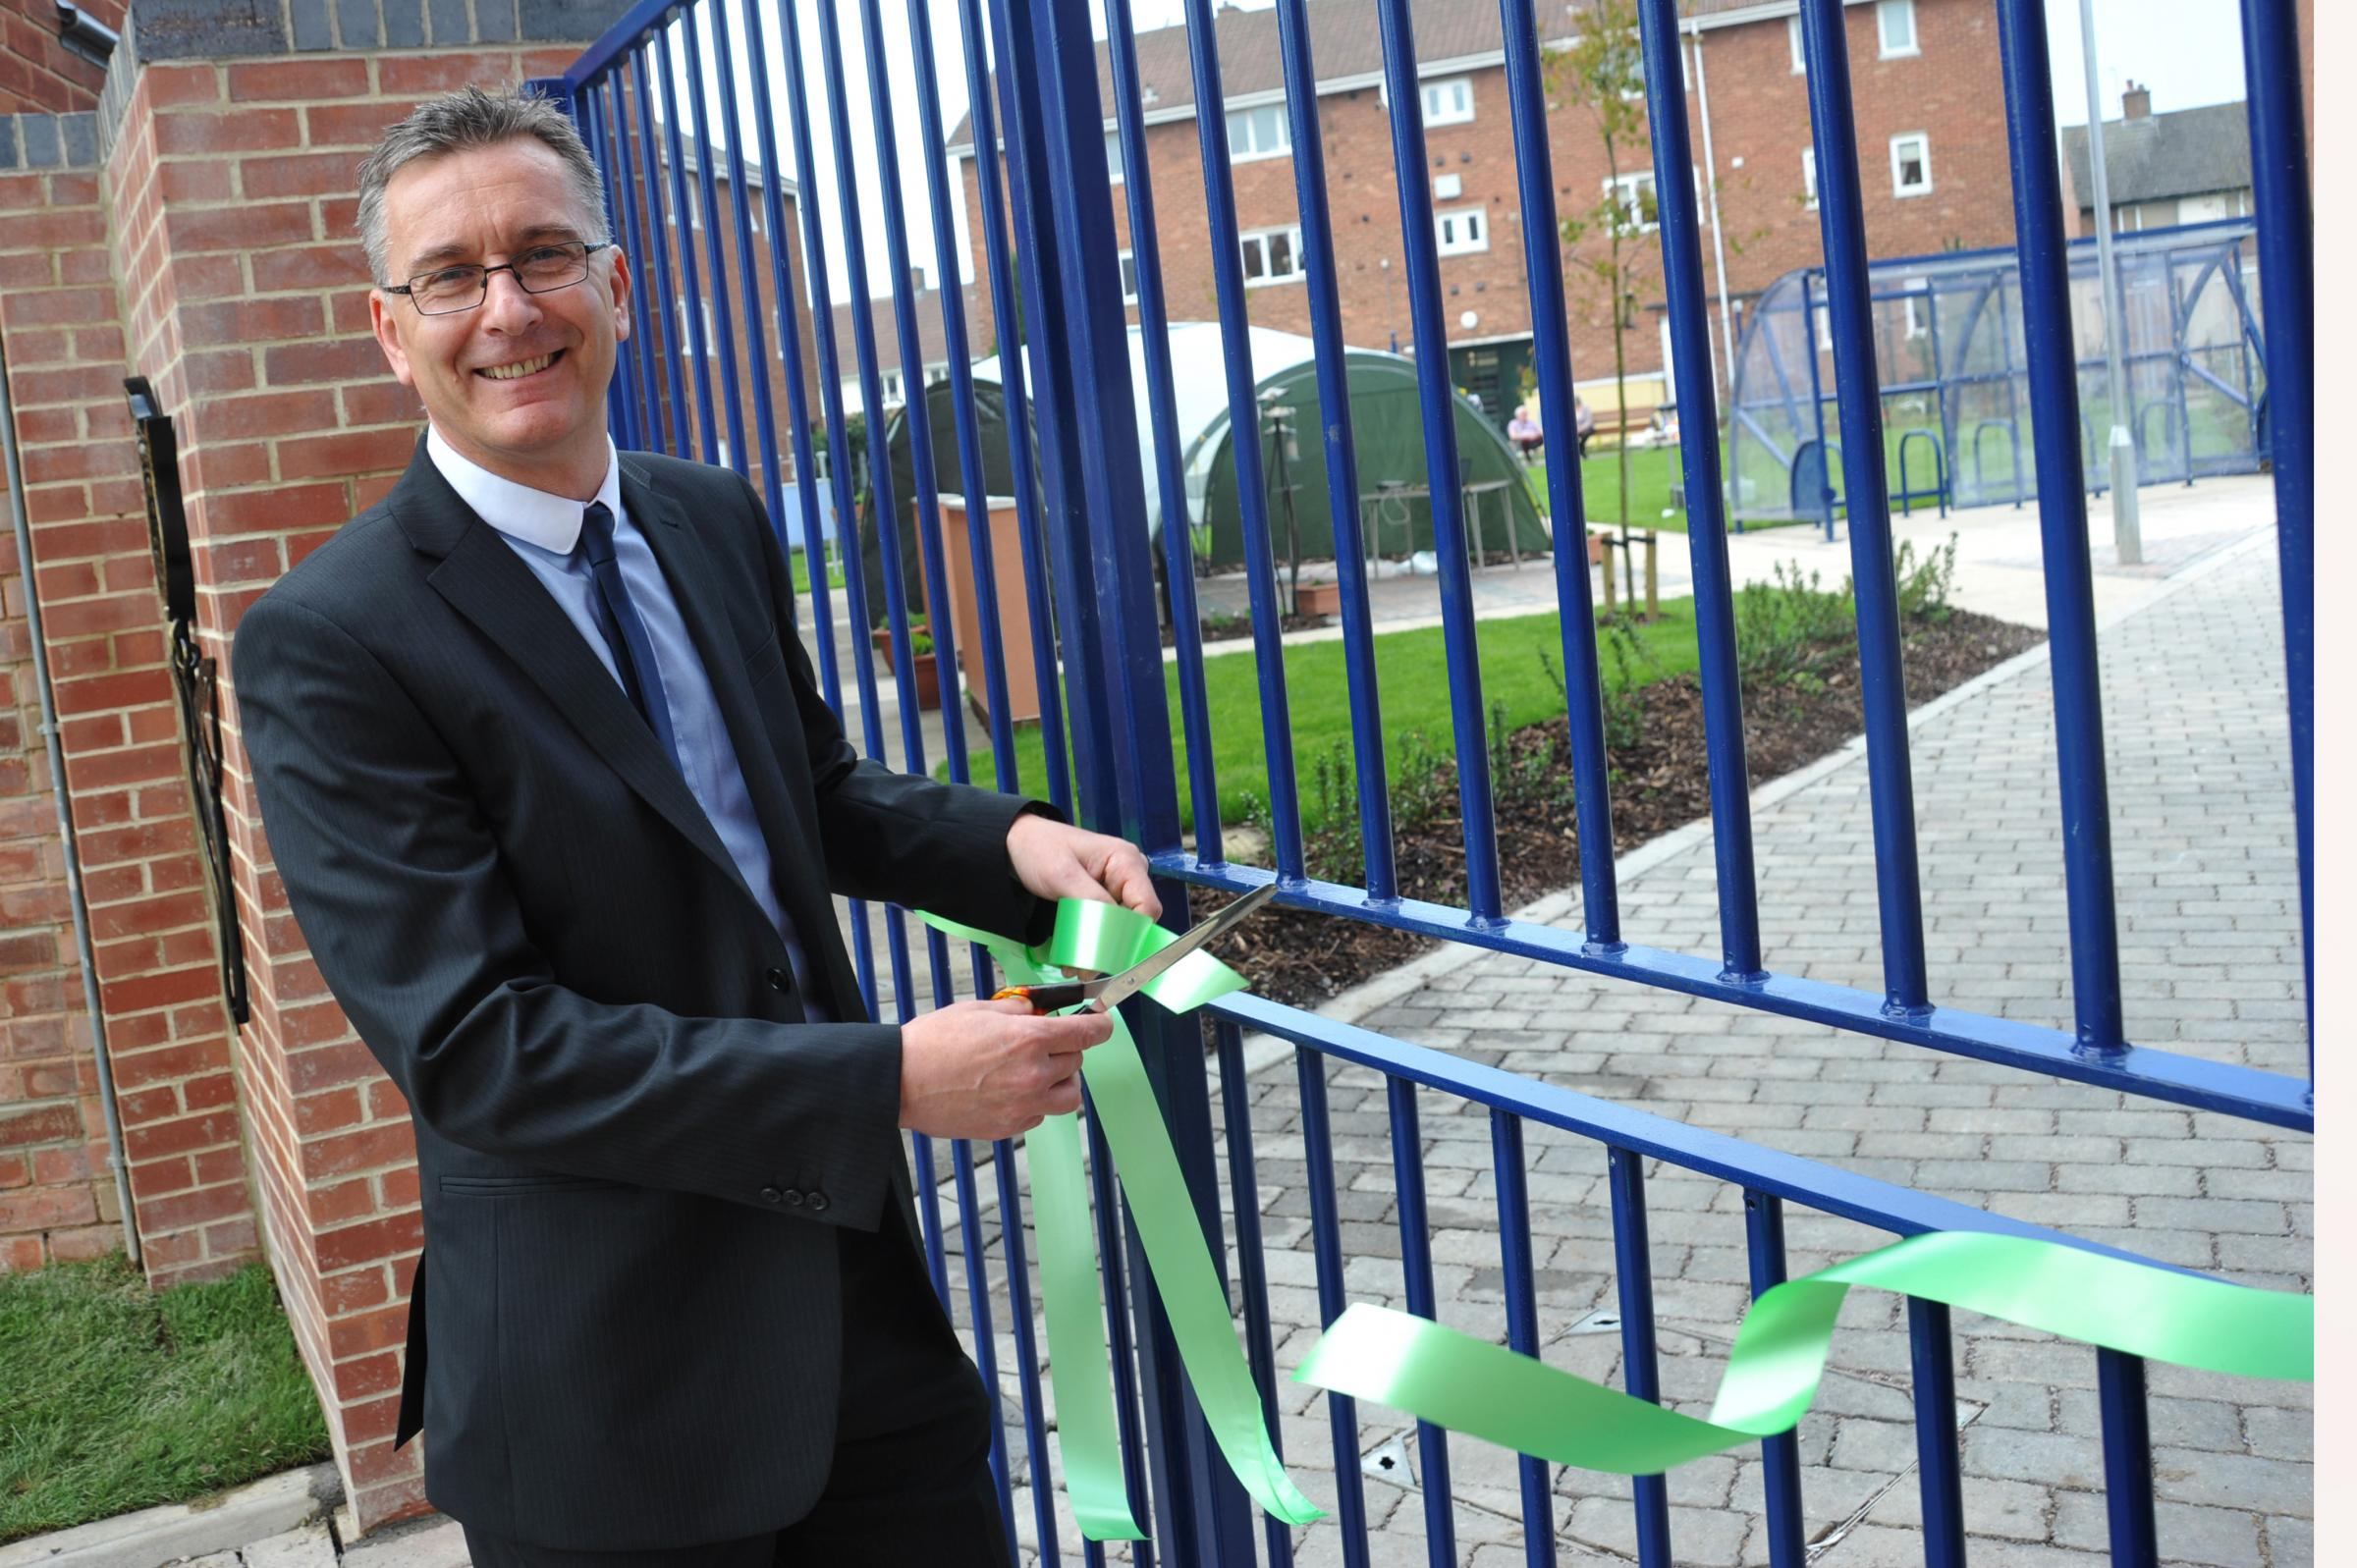 JOB DONE: Dave Pickard, director of operations for Thirteen, officially opens the revamped communal area in Fairfield, Stockton